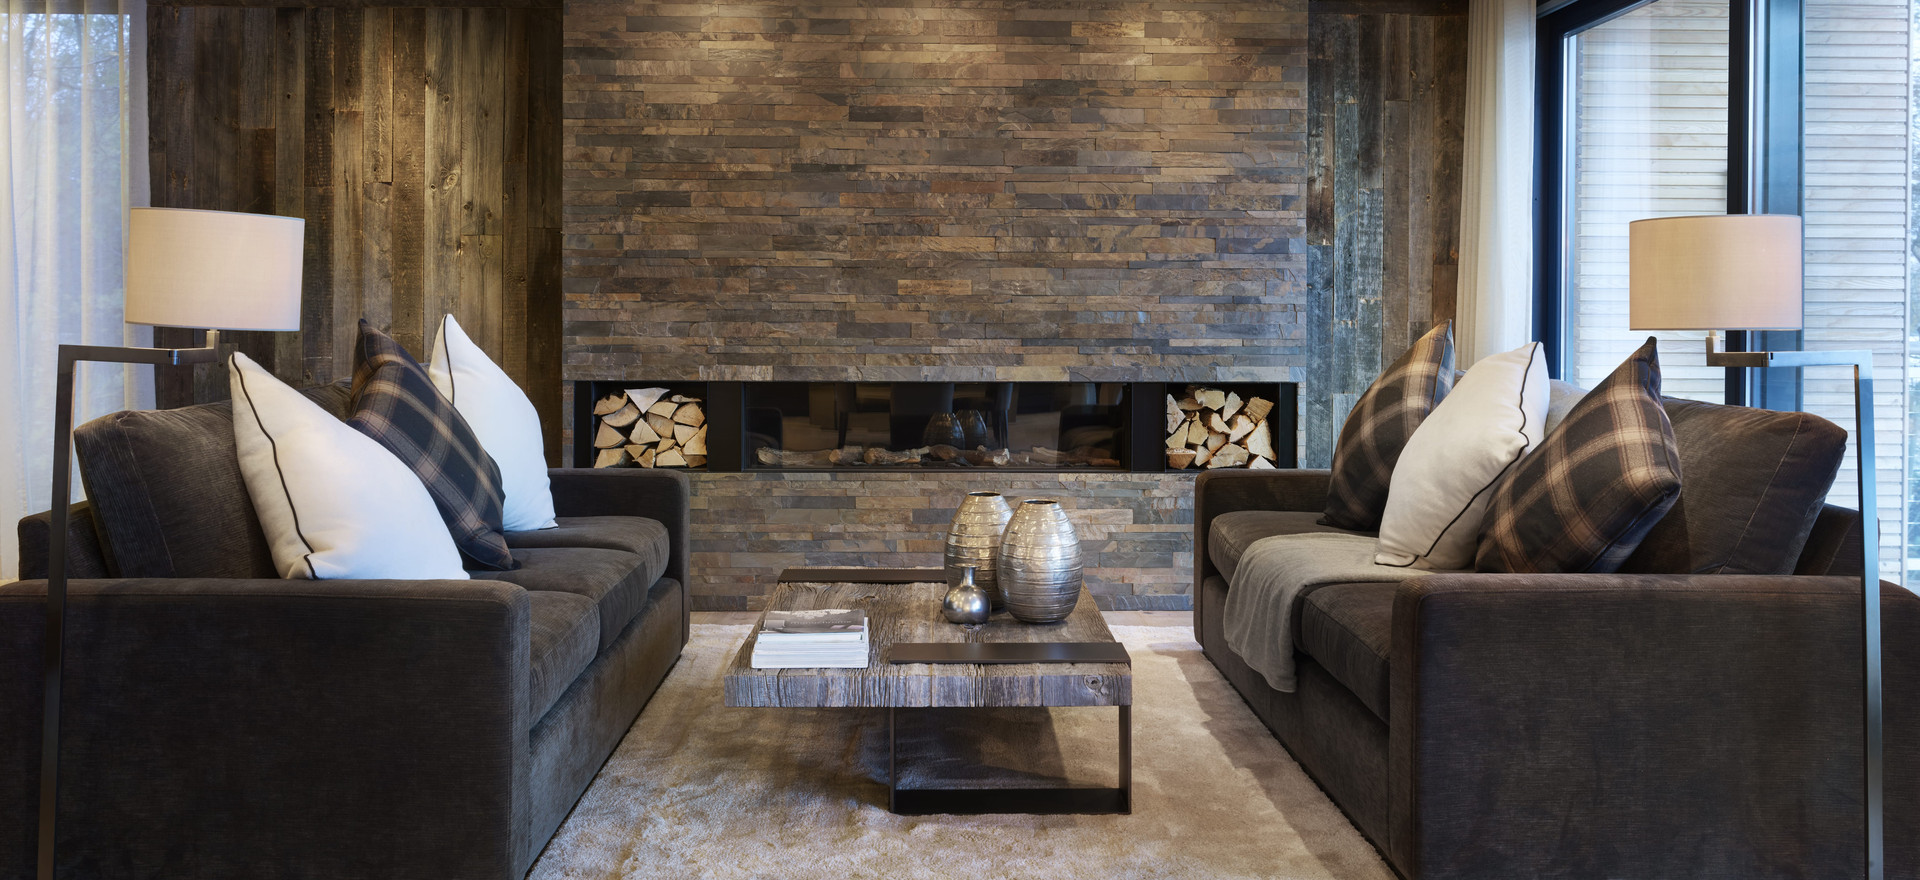 Fire Place Lighting